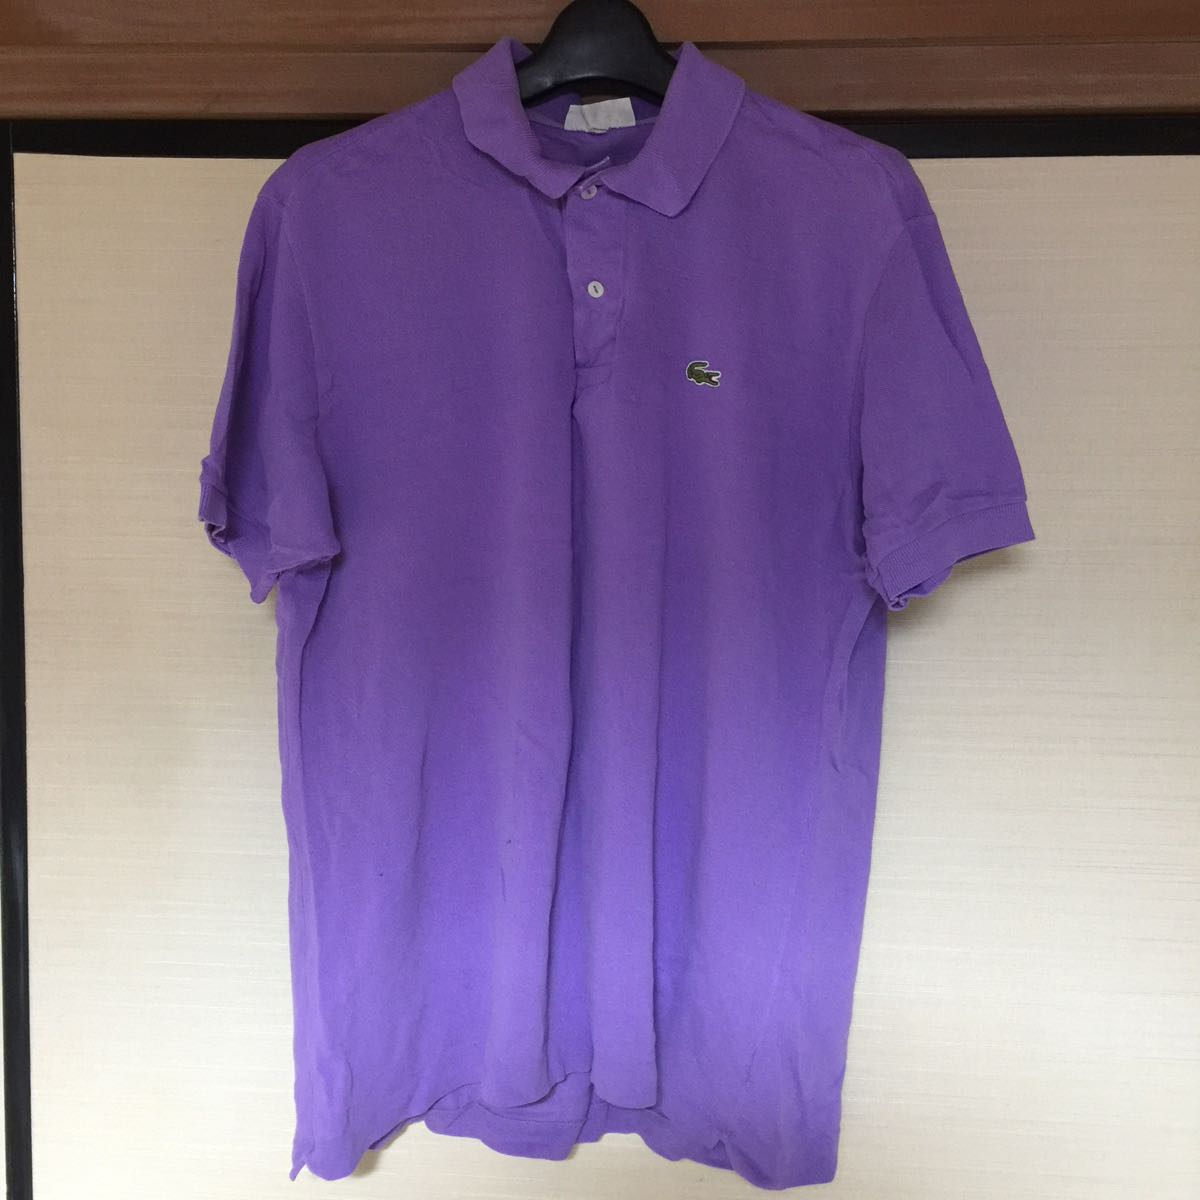 Lacoste Lacoste Polo Shirt France Made Purple Short Sleeves Size 6